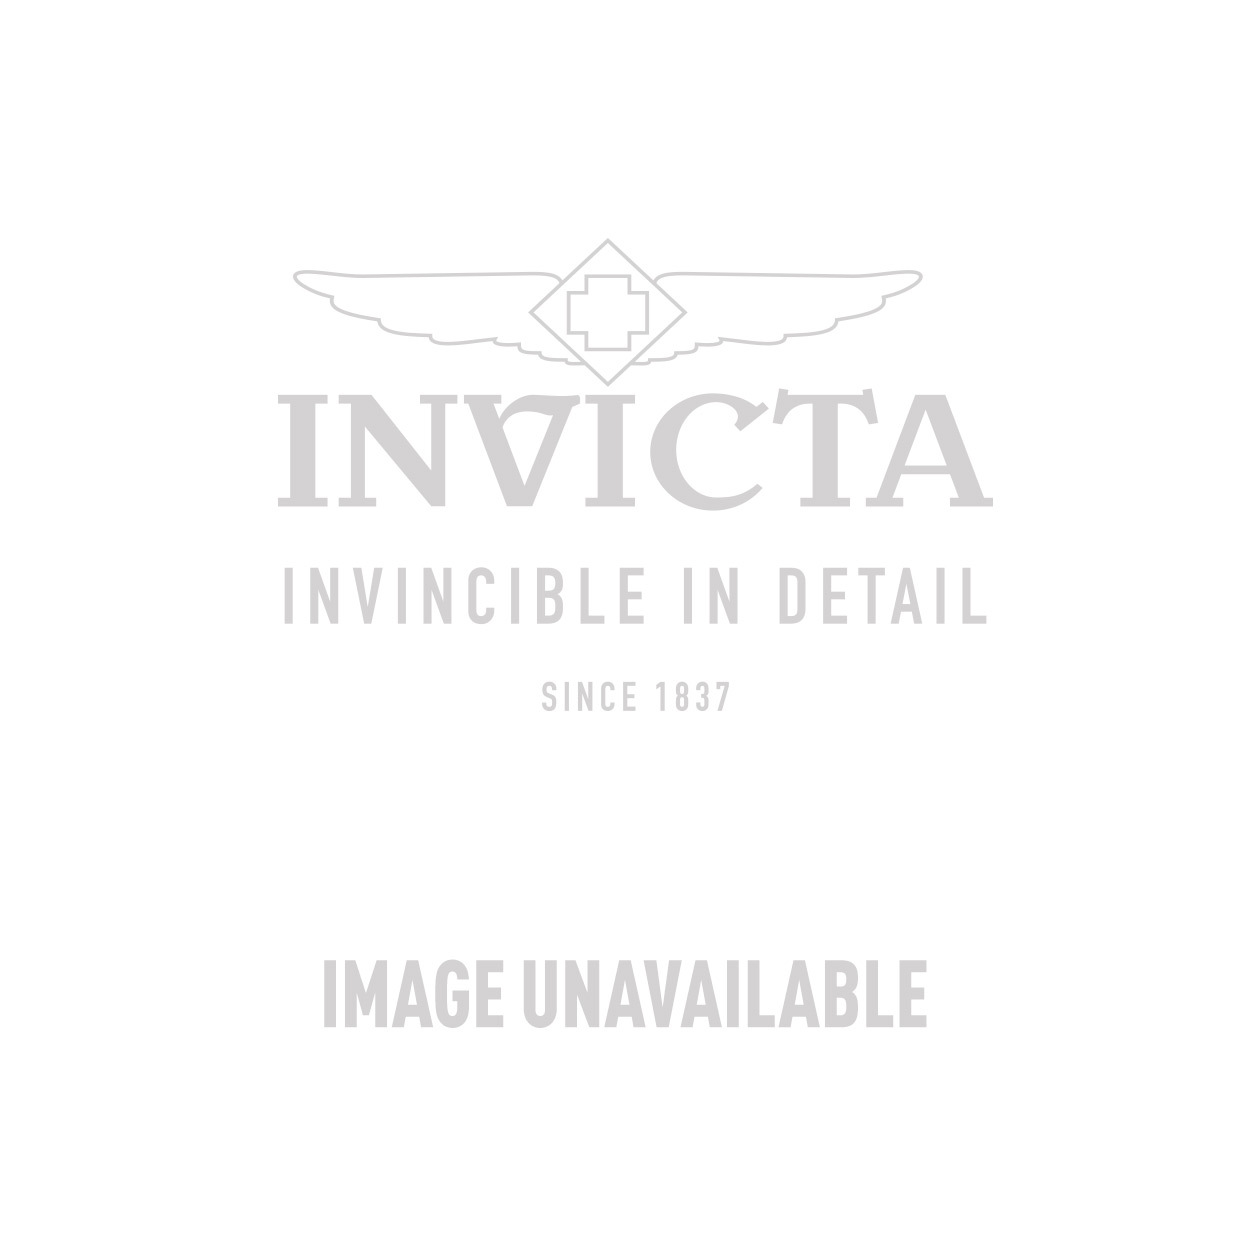 Invicta Specialty Quartz Watch - Gold, Gunmetal case with Gold tone Stainless Steel band - Model 15160